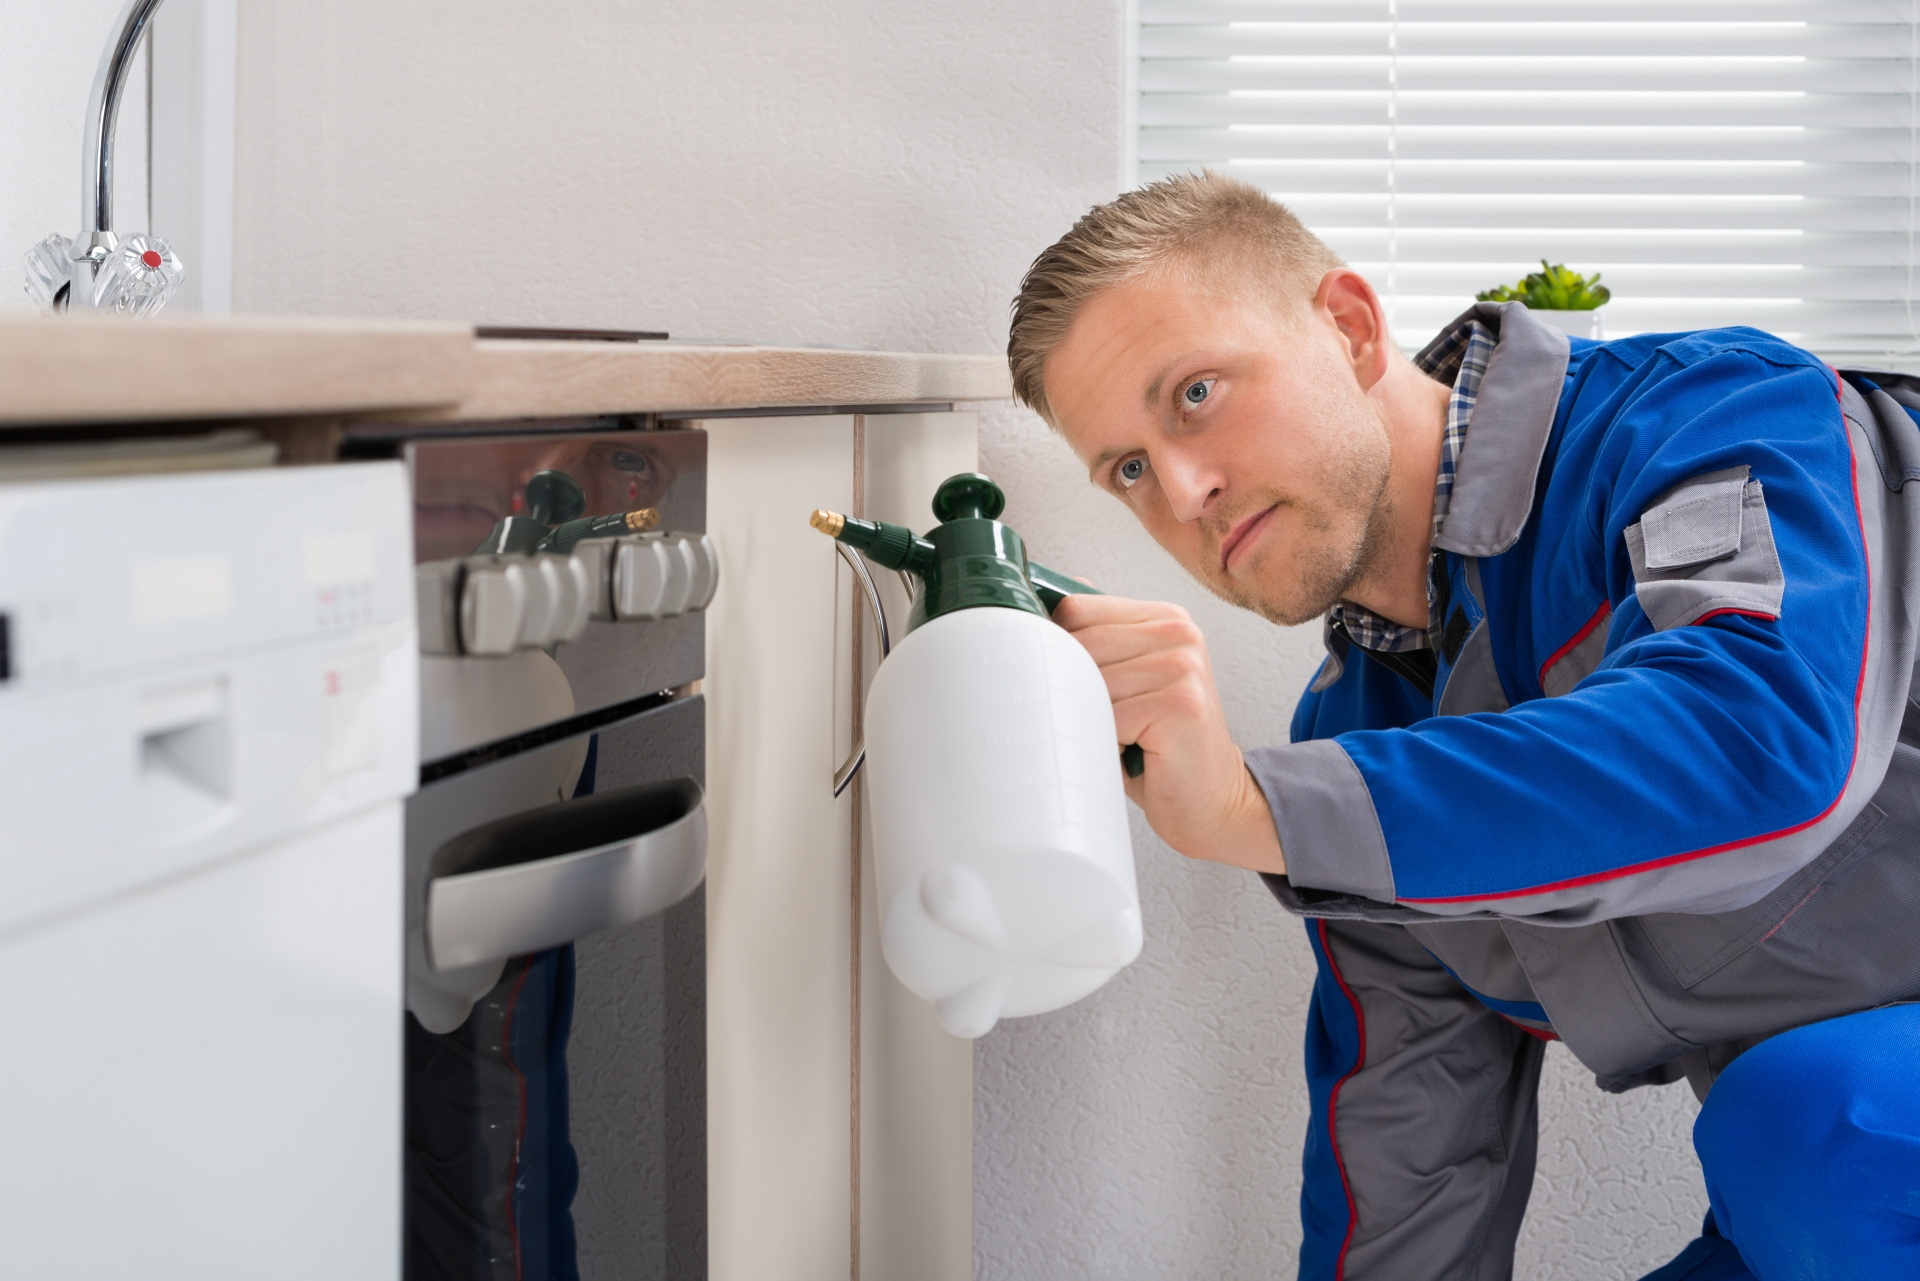 Pest Inspection, Pest Control in Stockwell, SW9. Call Now 020 8166 9746